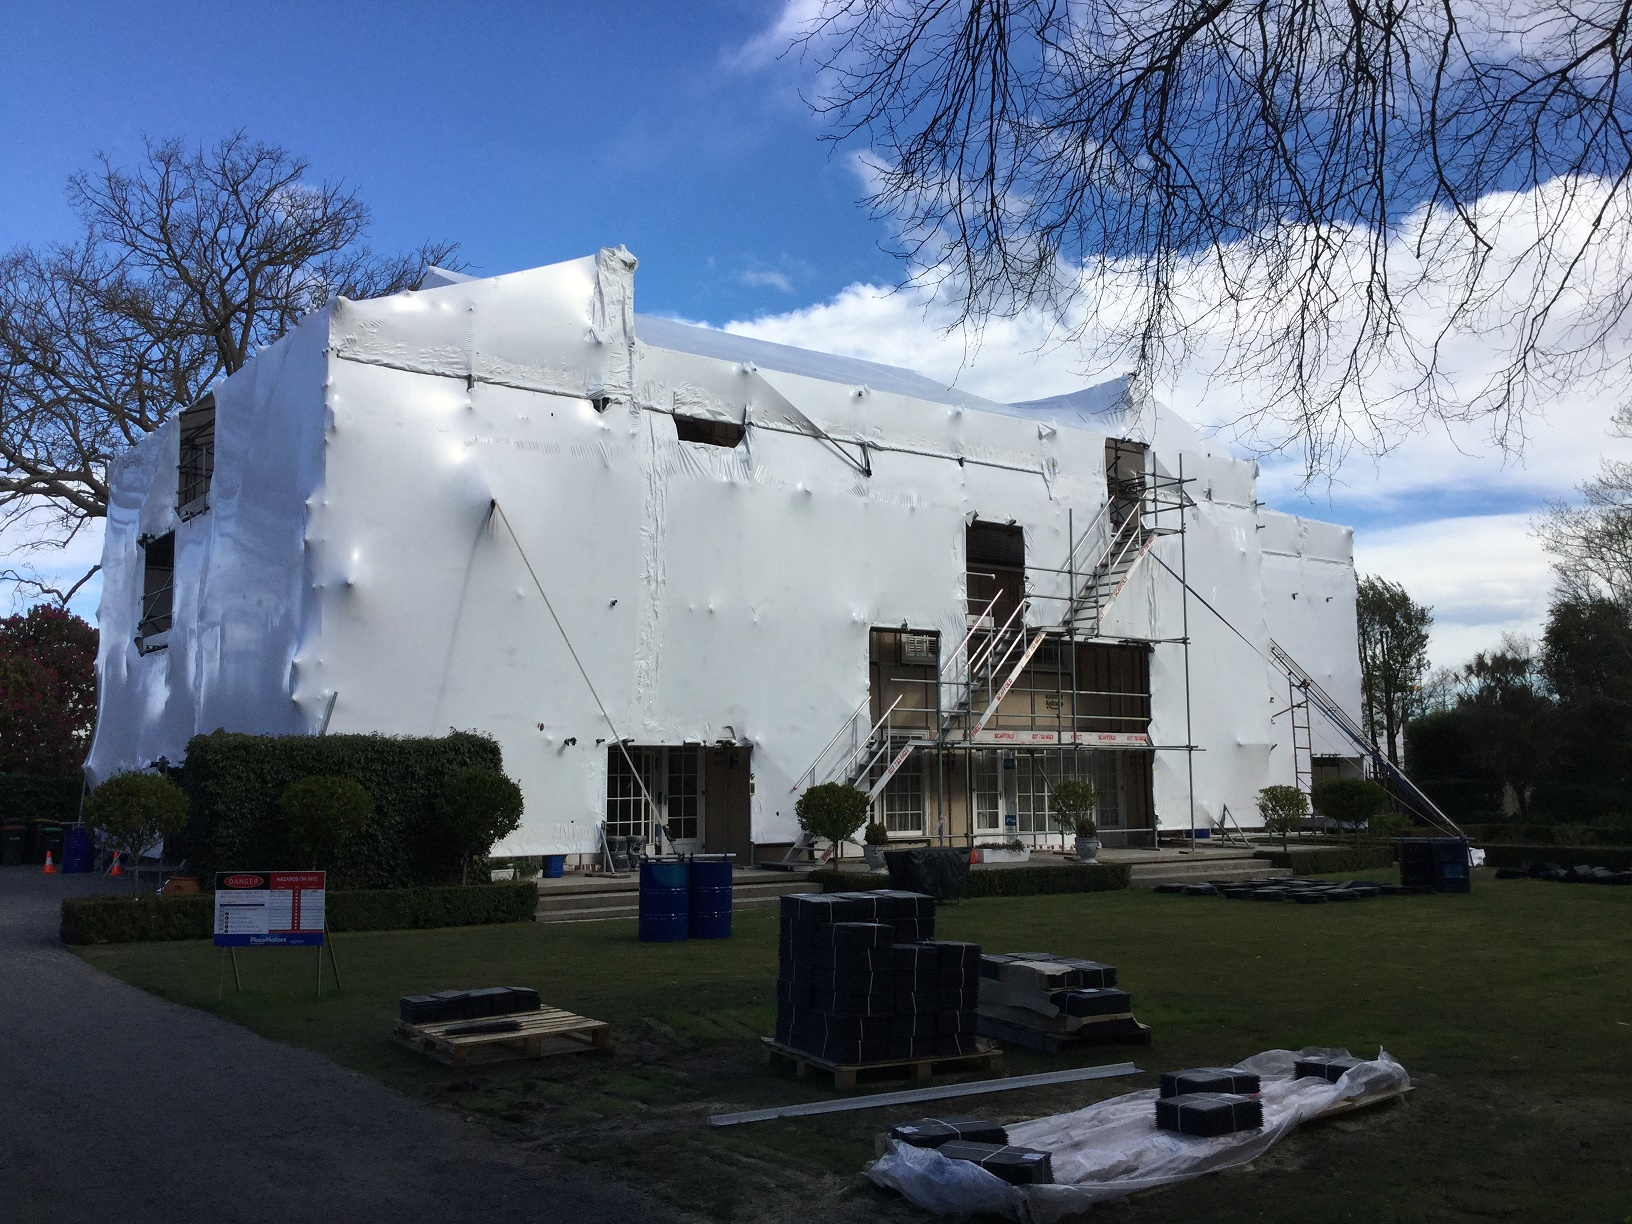 Scaffolding Canterbury Shrink Wrap Services Christchurch Canterbury Region